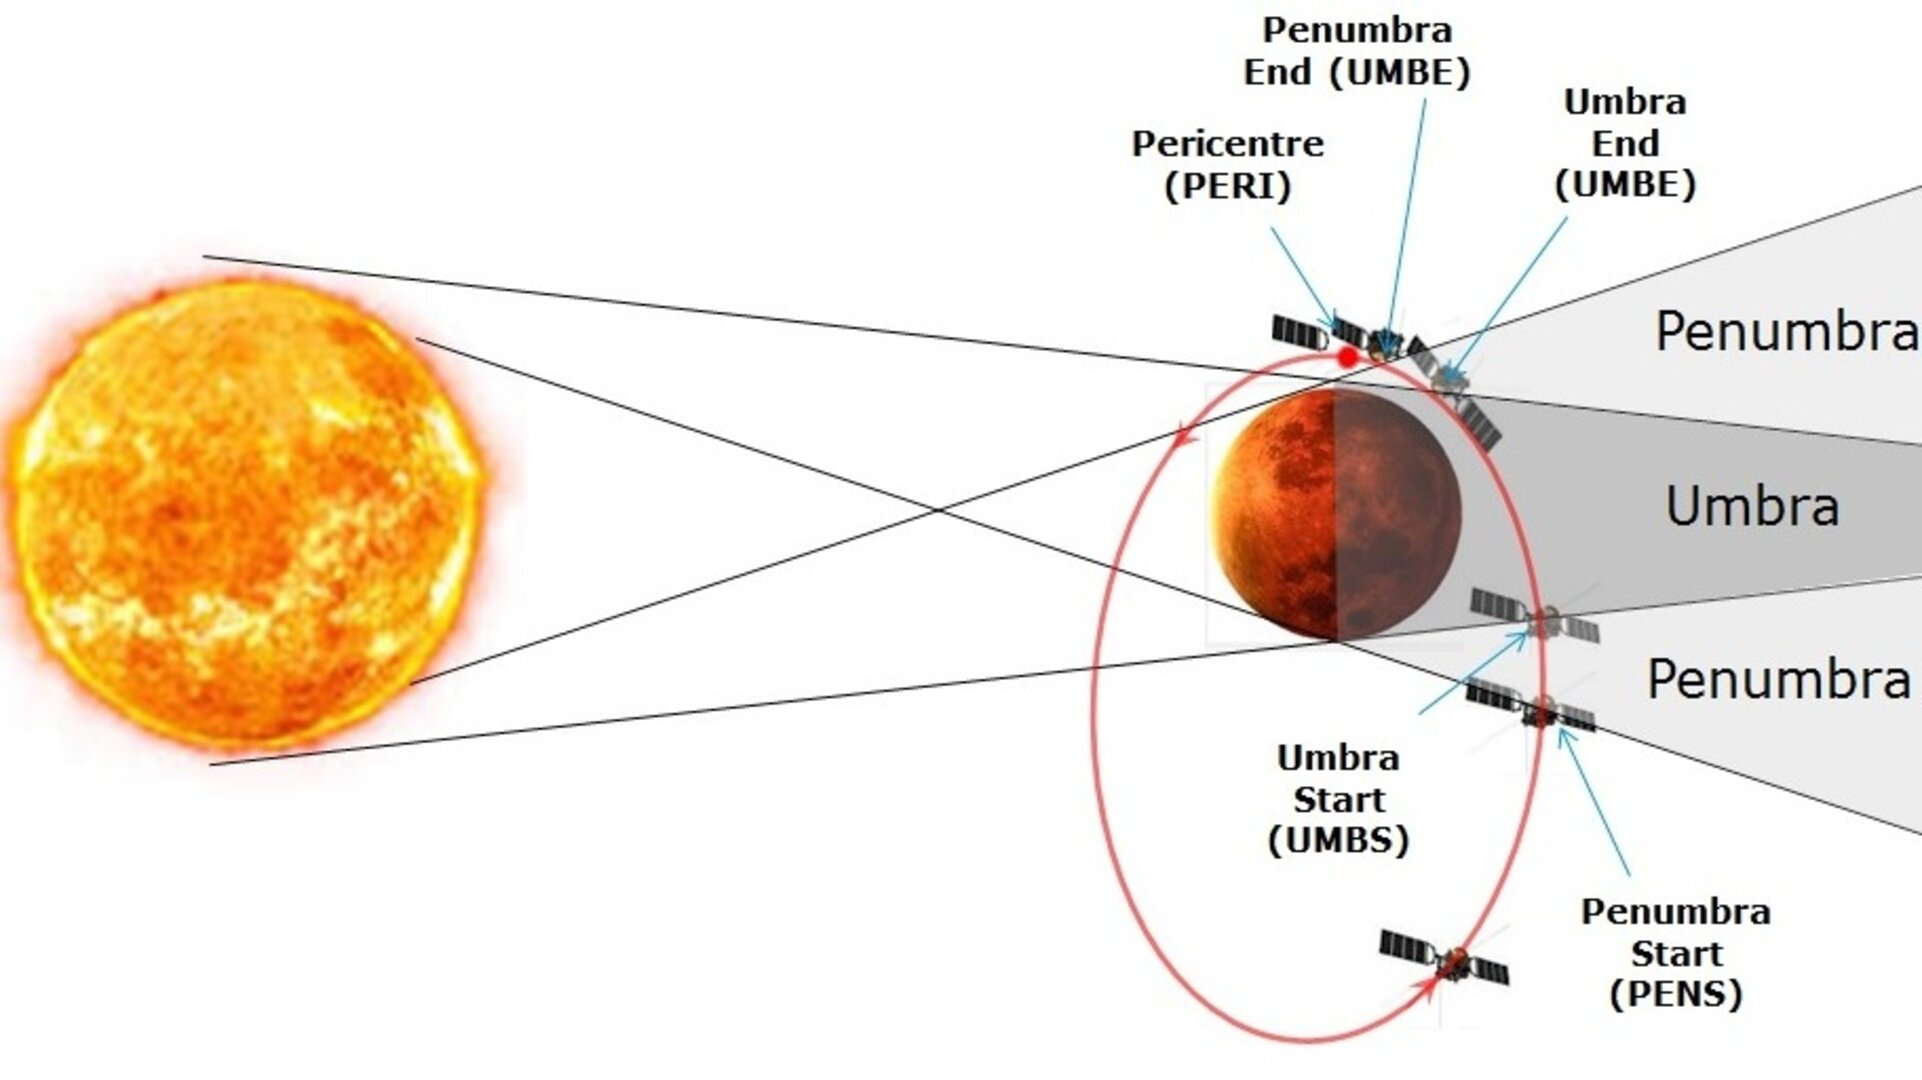 Eclipses in Mars orbit